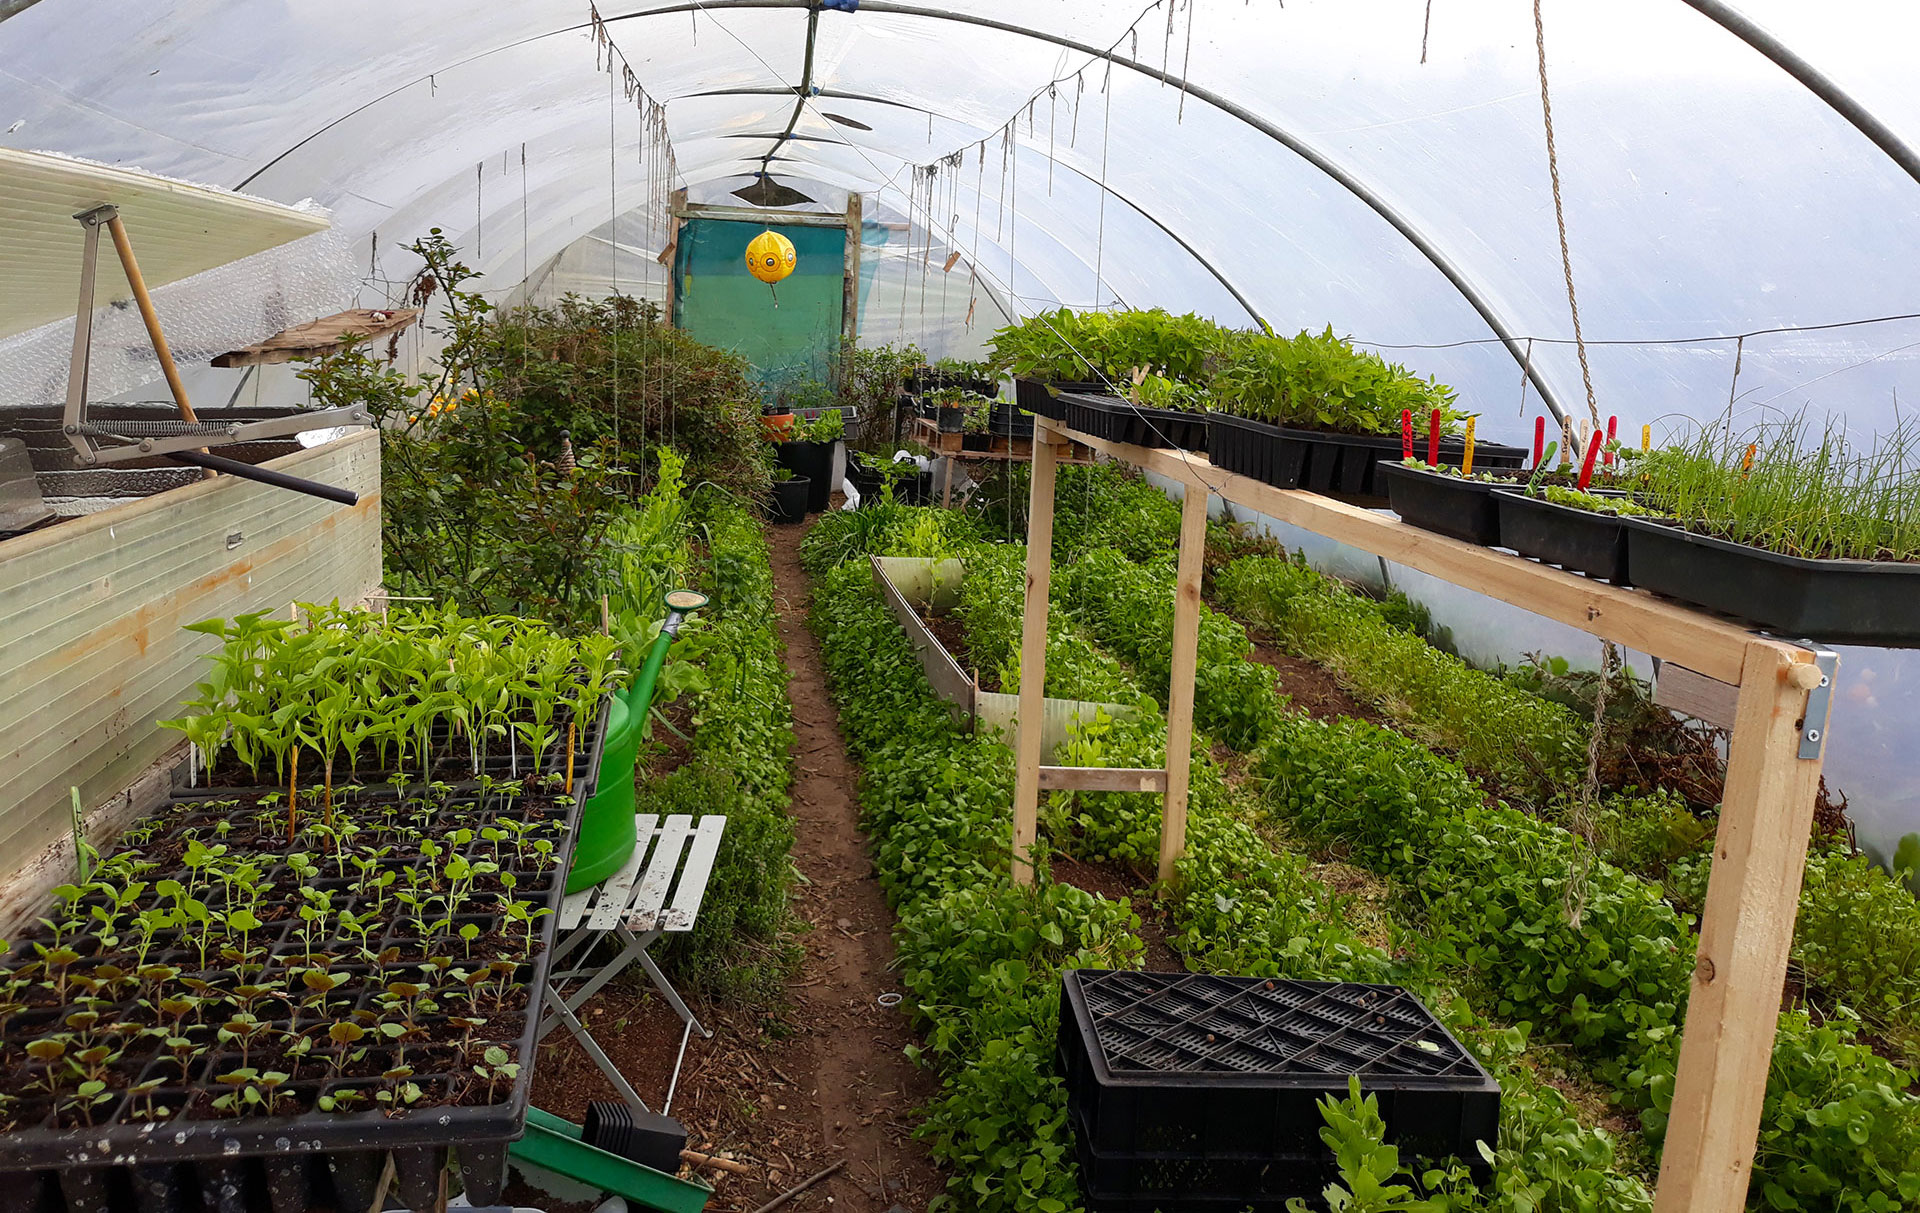 Polytunnel Course setting at Dunmore Country School